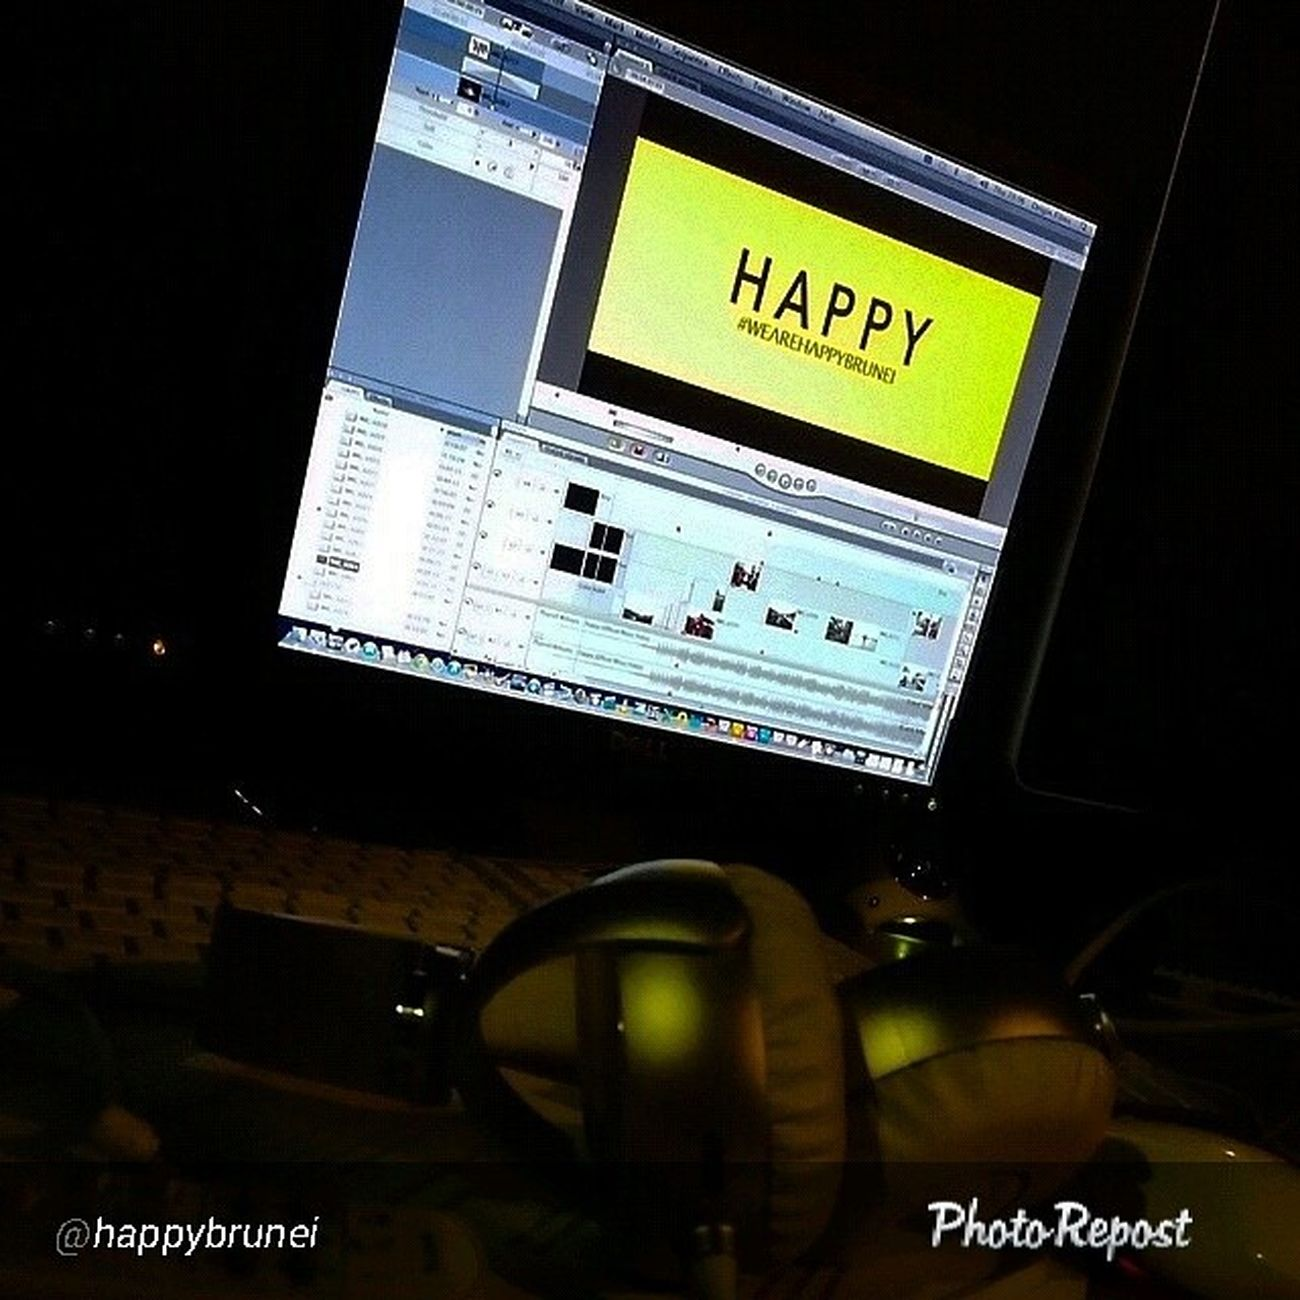 """By @happybrunei """"And the Happy Brunei video is DONE! Wanna watch it? Well you're gonna have to wait for a bit. We'll be premiering it via our YouTube page this Saturday 14th of June at 20:00 hrs (Brunei time). So make sure you subscribe to our channel Happy Brunei to get the notification when we upload it. We promise, you won't regret it! ☺ Wearehappybrunei HappyBrunei Brunei """" via @PhotoRepost_app"""